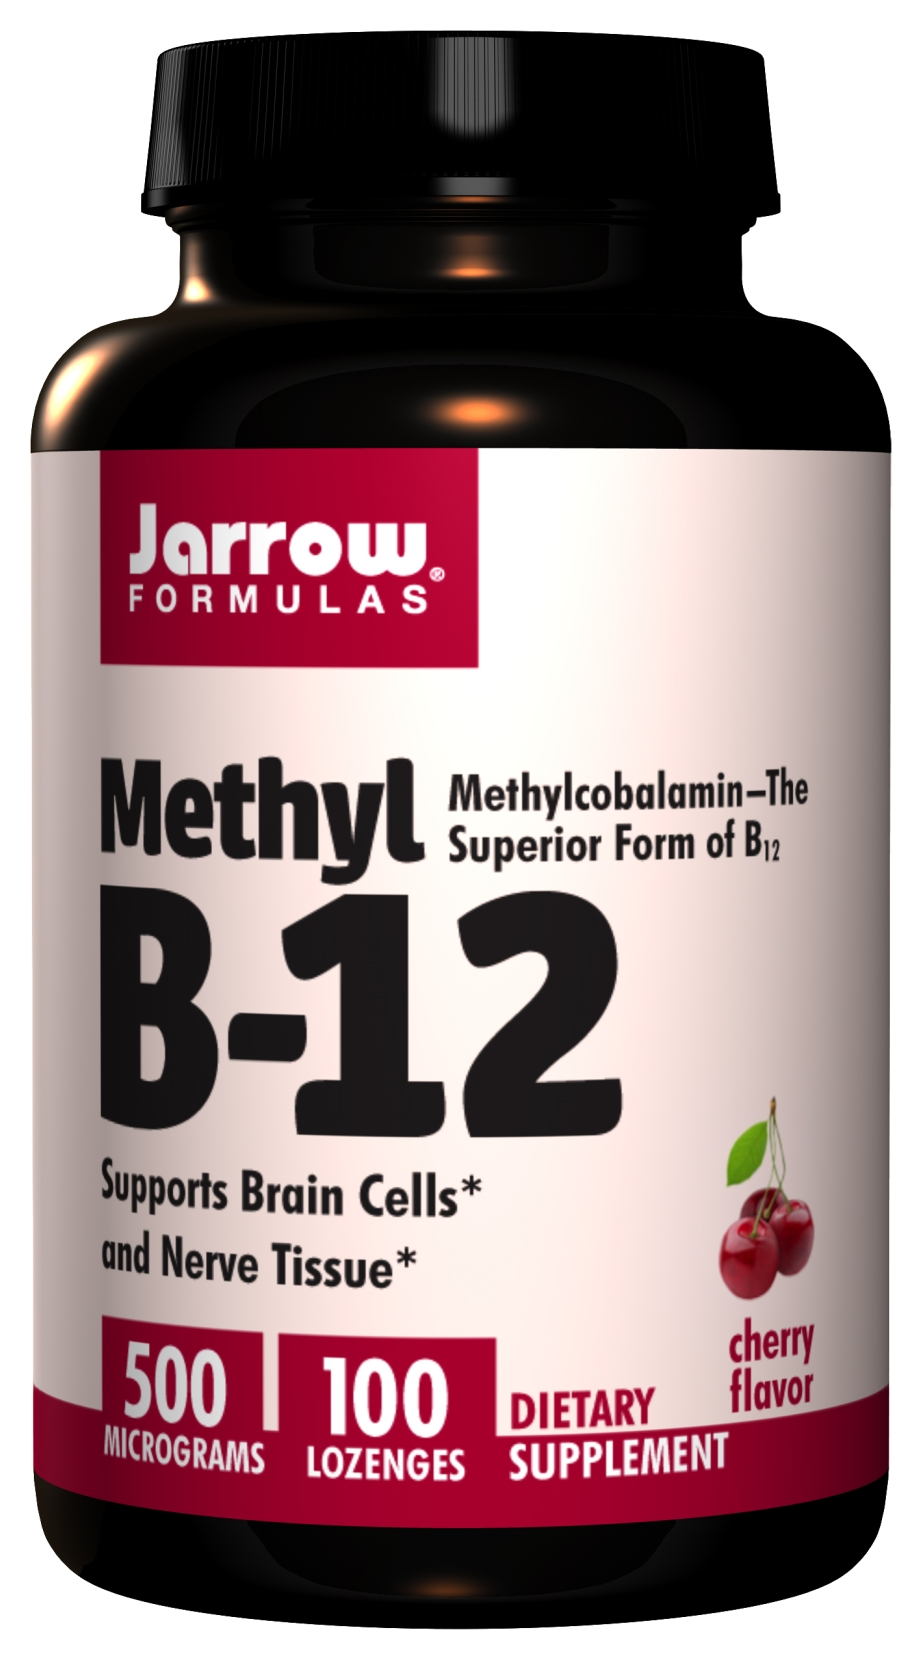 Methyl B-12 500 mcg 100 Lozenges by Jarrow Formulas